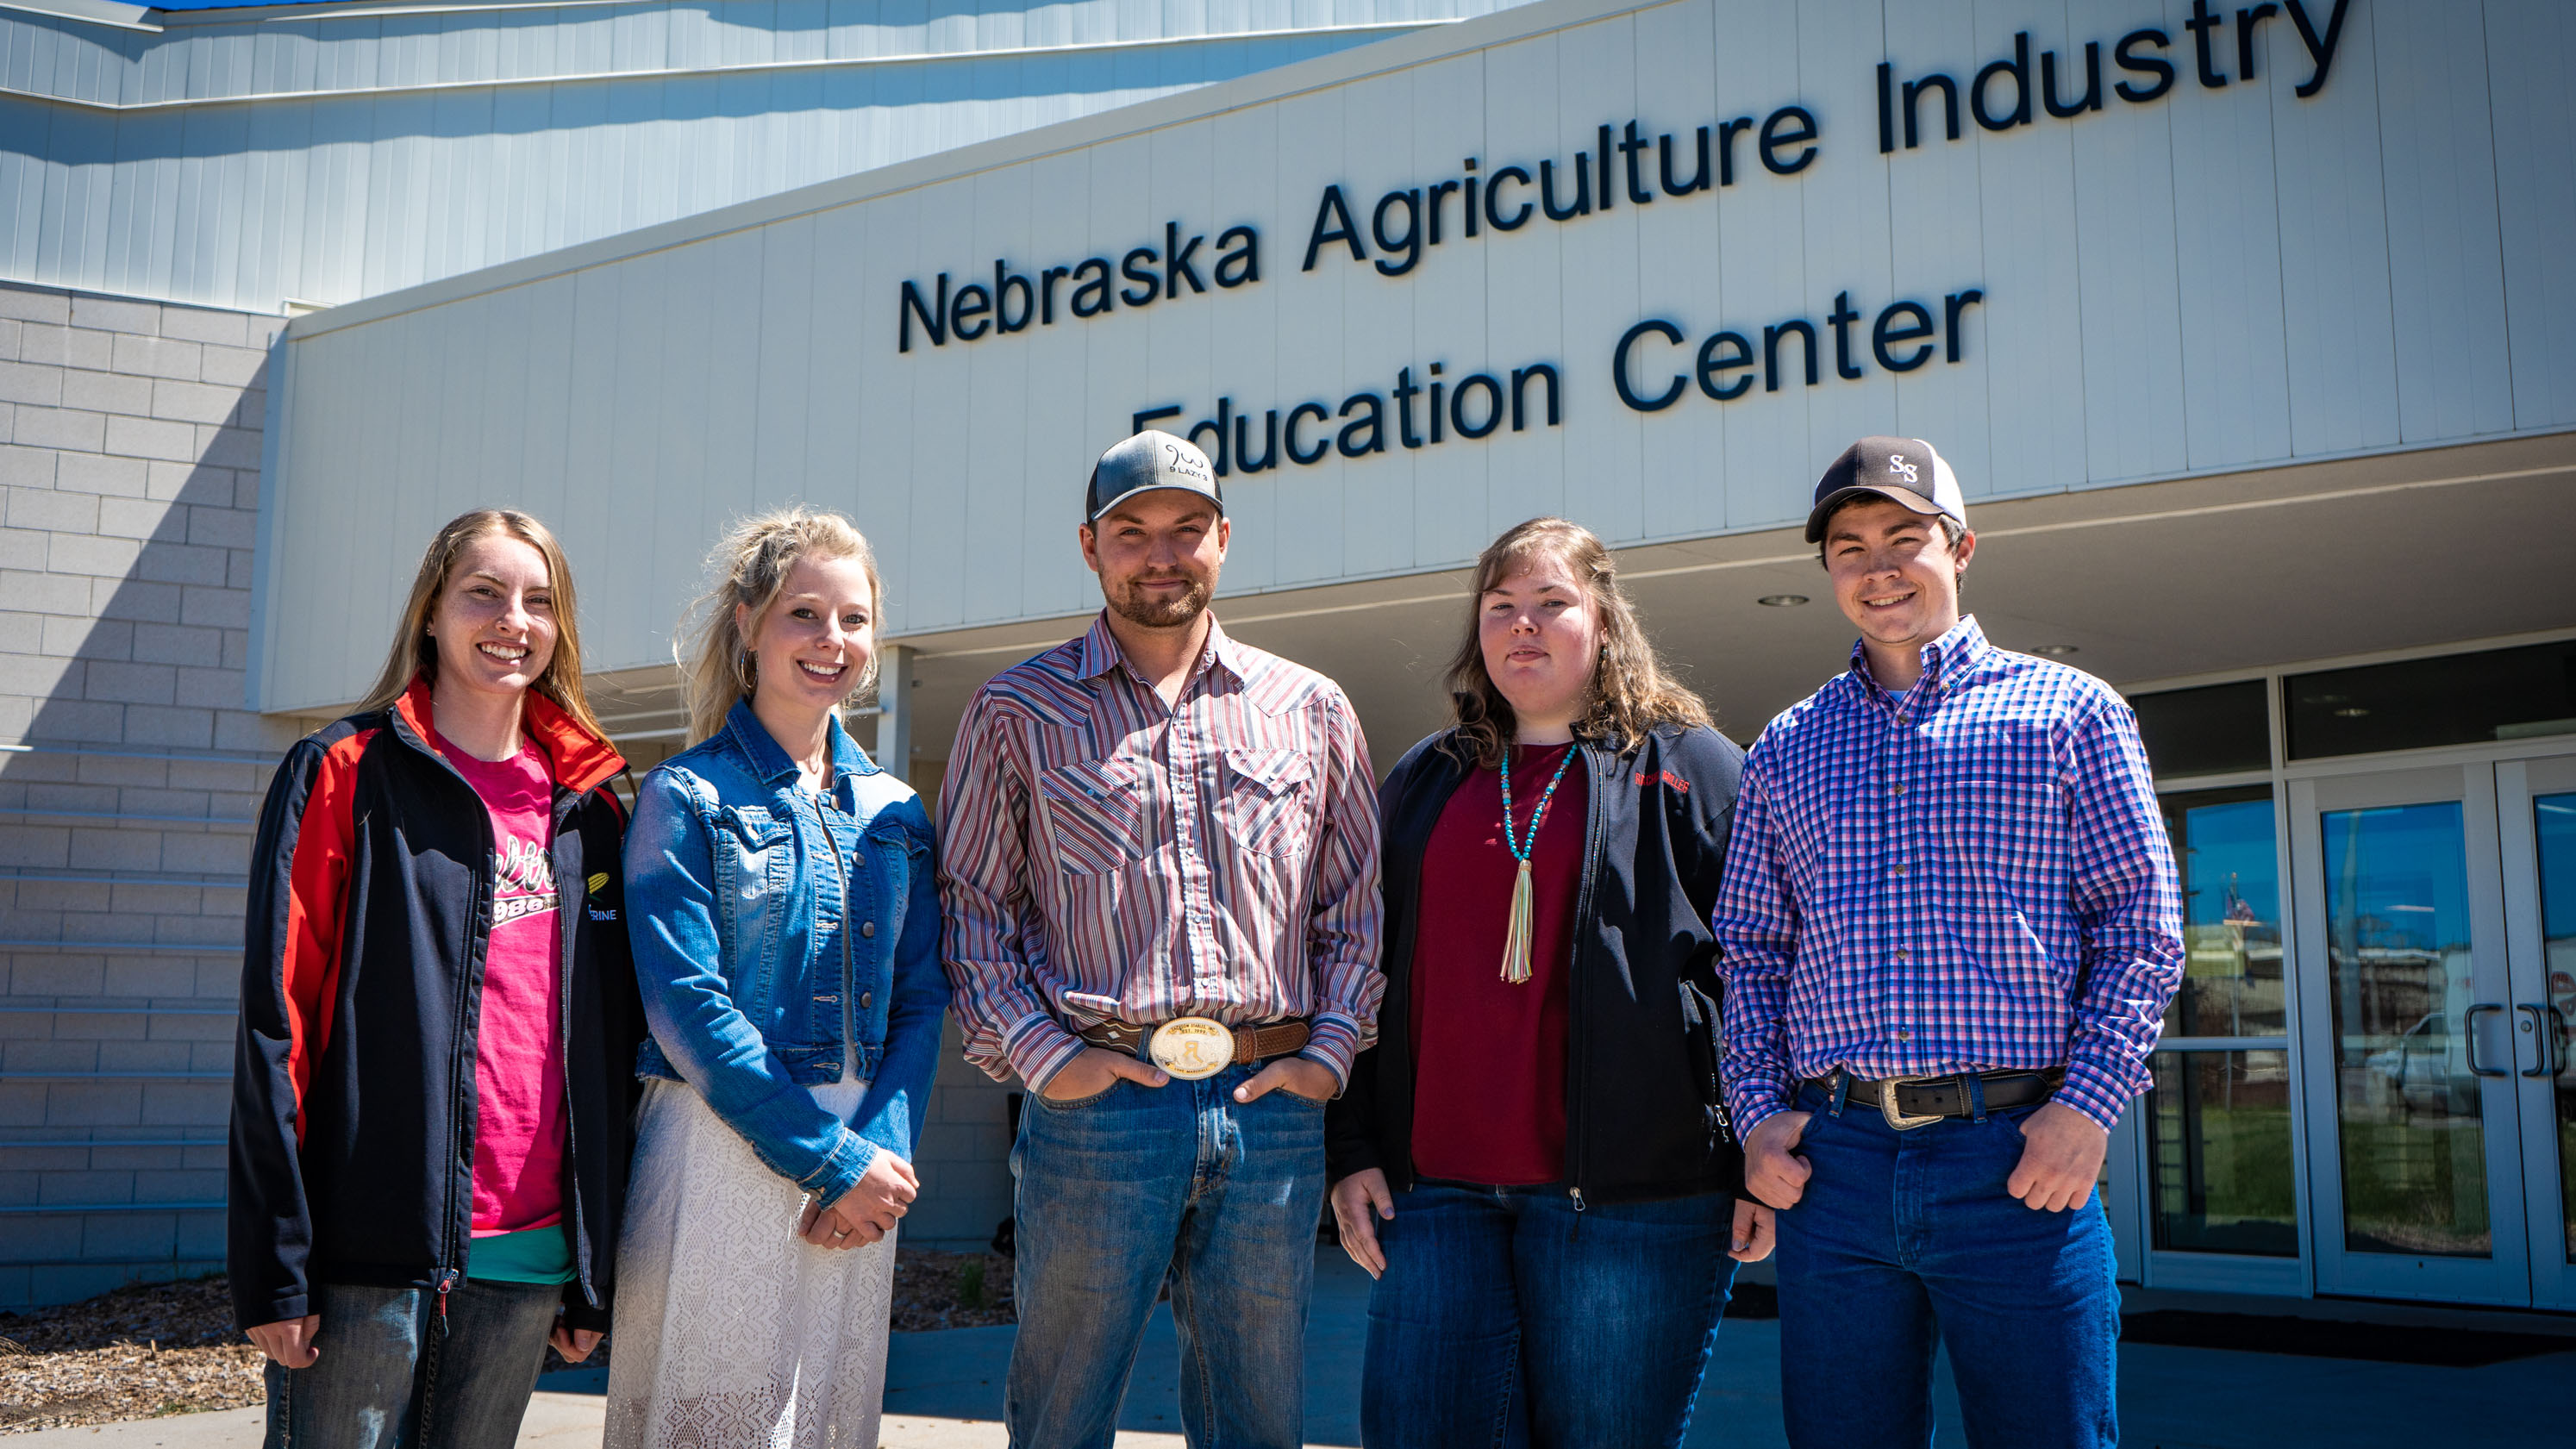 NCTA in Curtis offers agriculture and veterinary technology programs at the two-year campus which is part of the University of Nebraska system. (Cy Cannon/NCTA Photo)